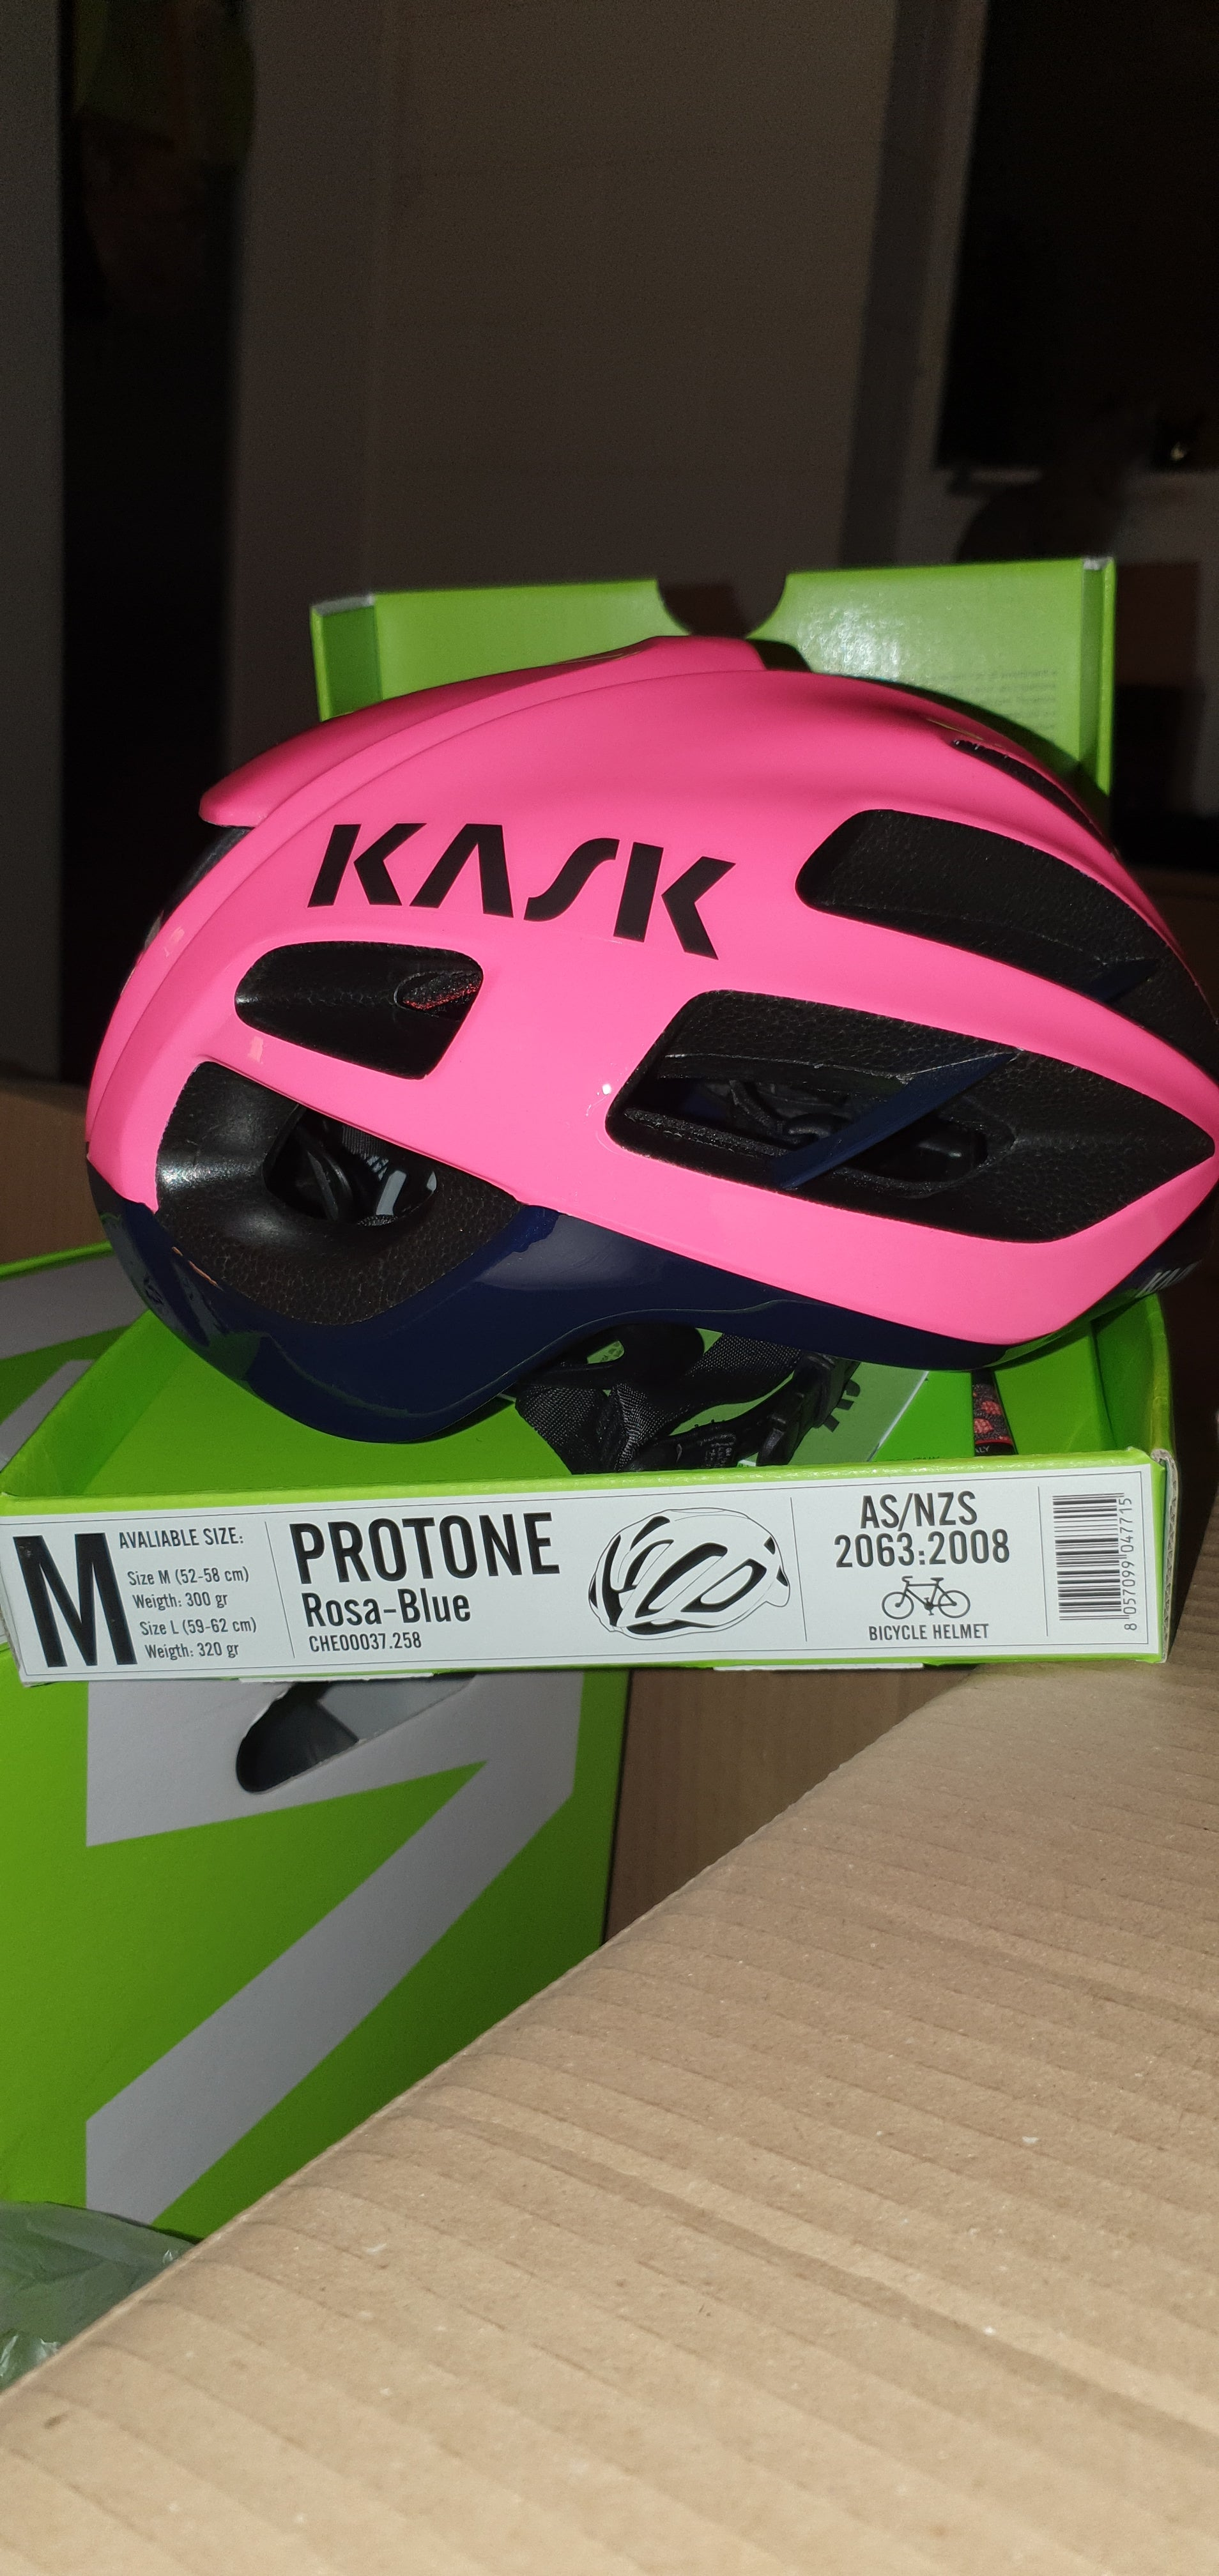 KASK Protone Pink Size M.